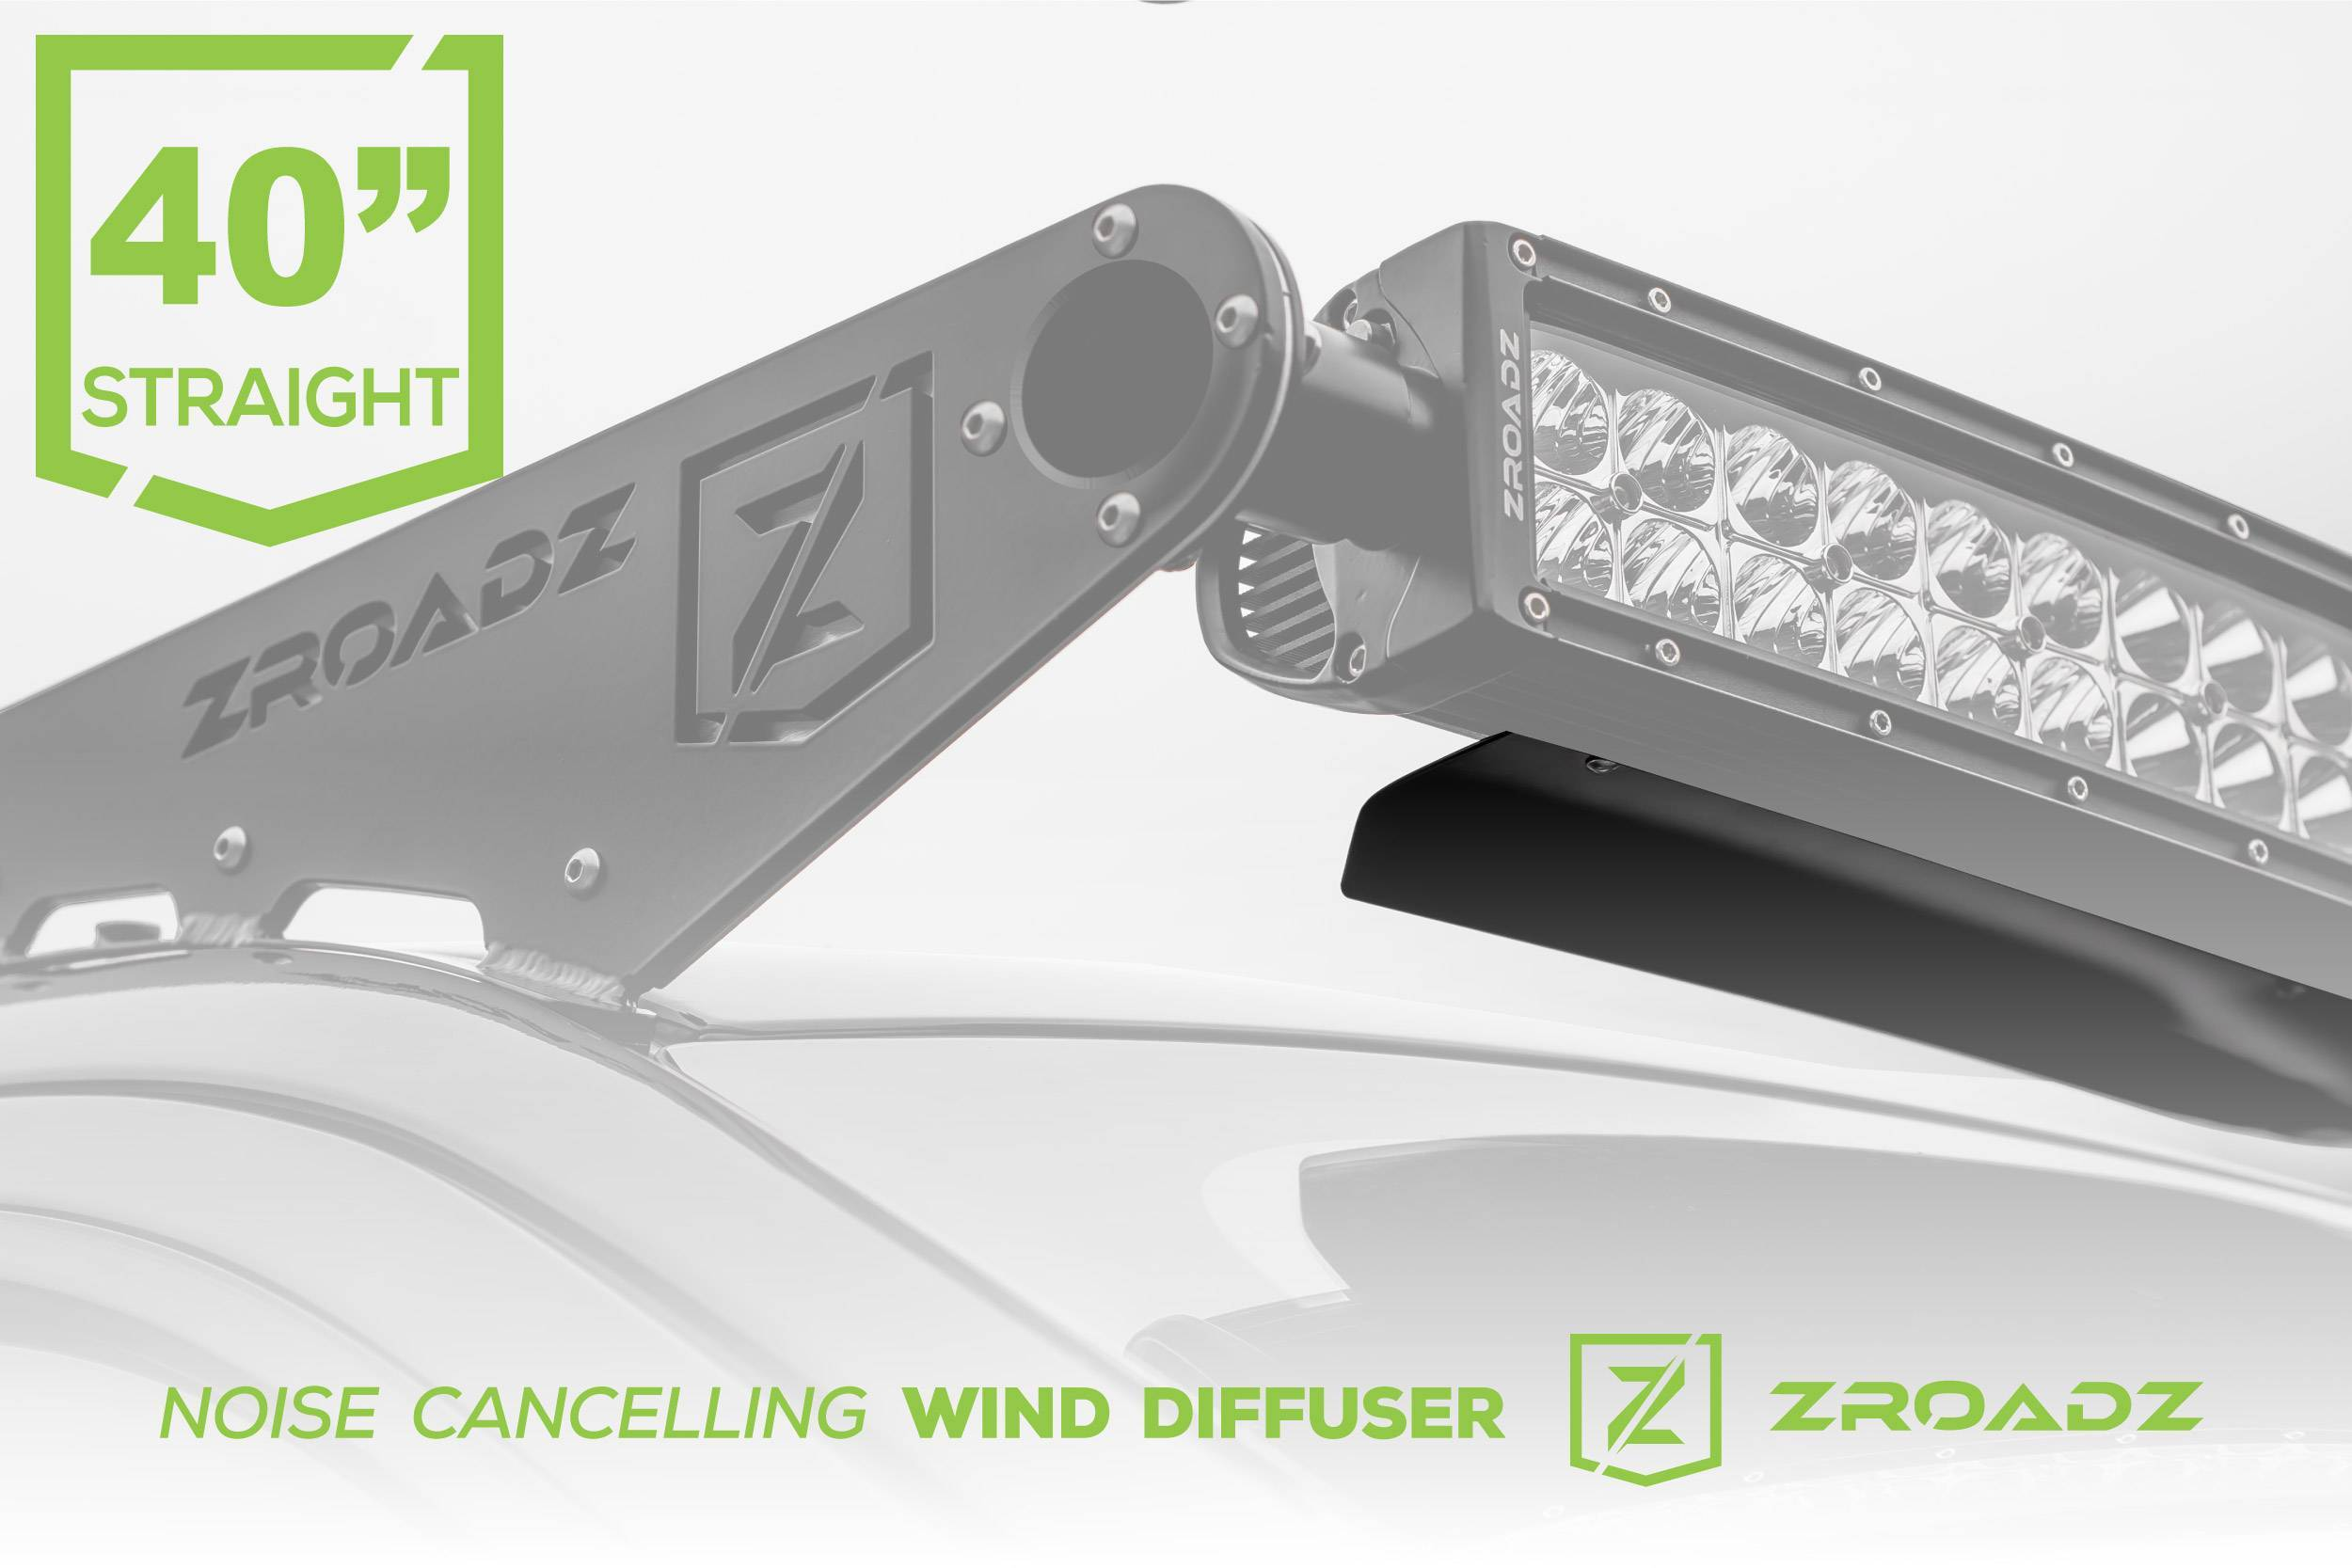 ZROADZ OFF ROAD PRODUCTS - Noise Cancelling Wind Diffuser for 40 Inch Straight LED Light Bar - PN #Z330040S